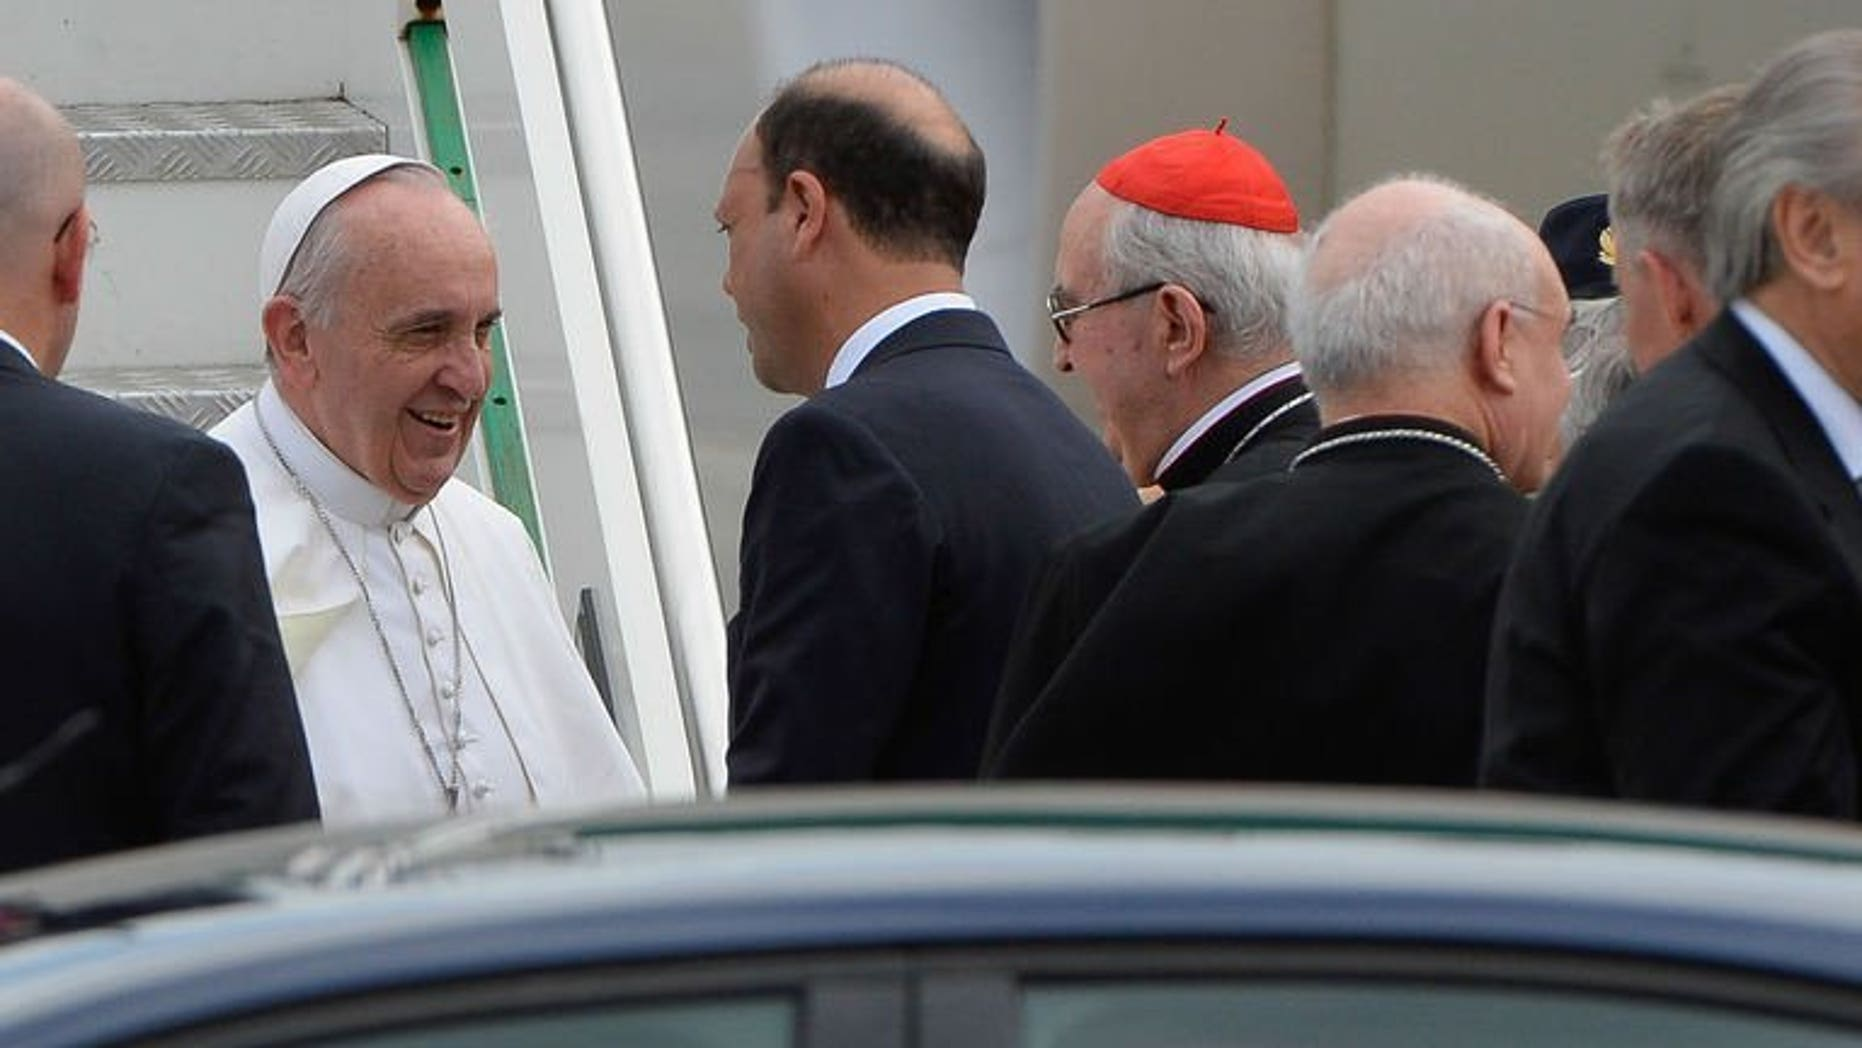 Pope Francis (L) speaks with Italian interior minister and deputy premier Angelino Alfano (C) after disembarking from his plane at Rome's Ciampino international airport on July 29, 2013. Pope Francis on Monday condemned the gay lobby but said that homosexuals should not be marginalised.